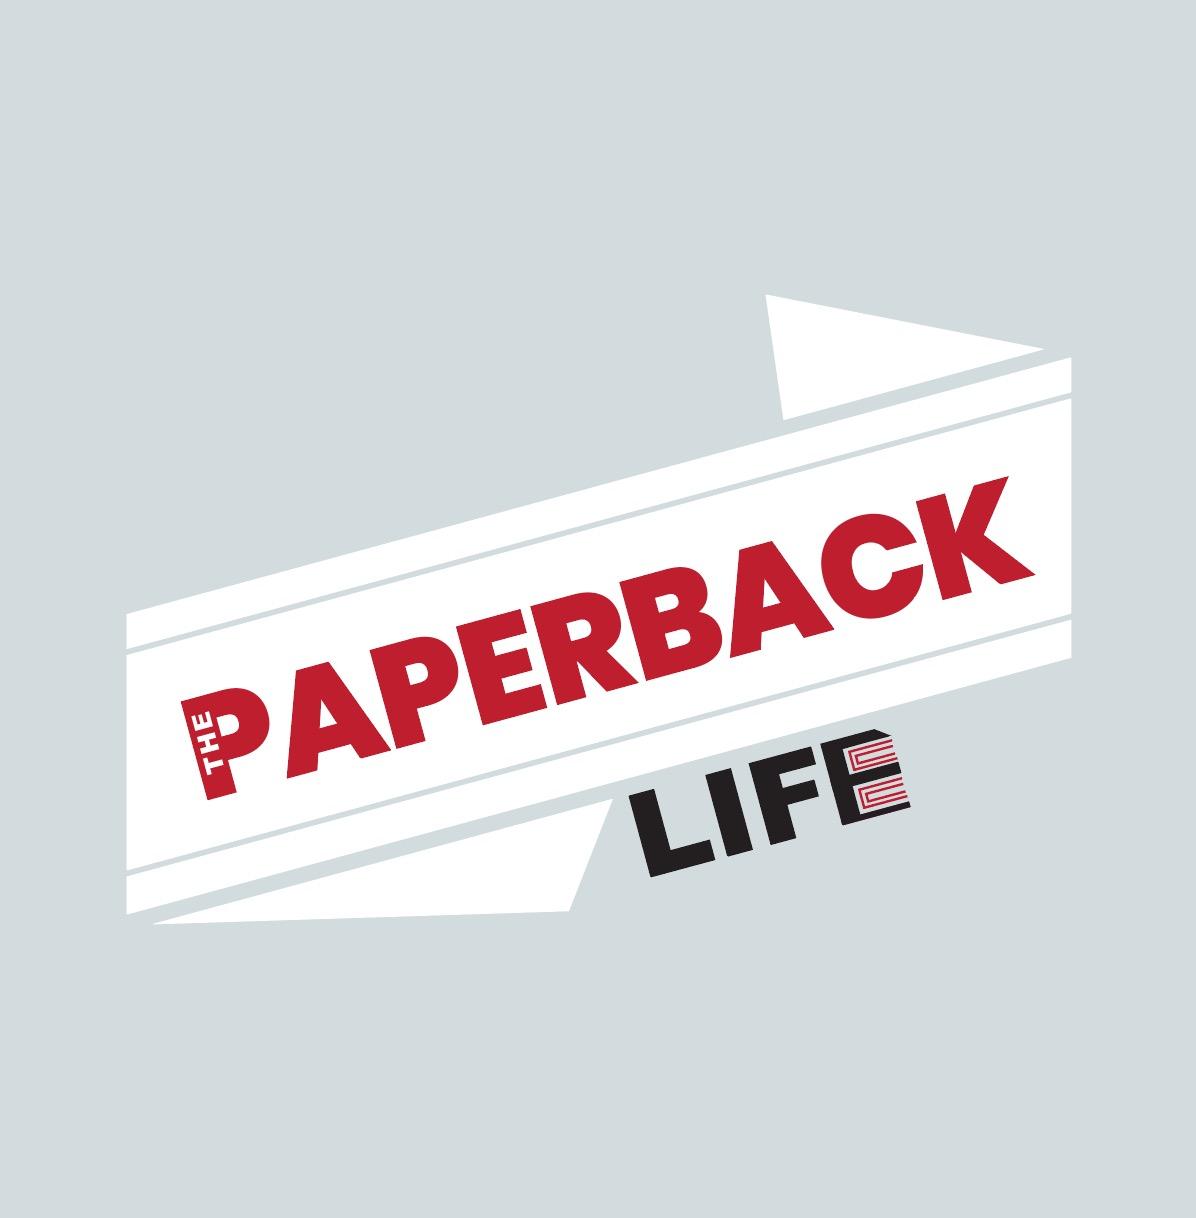 The Paperback Life LLC primary image